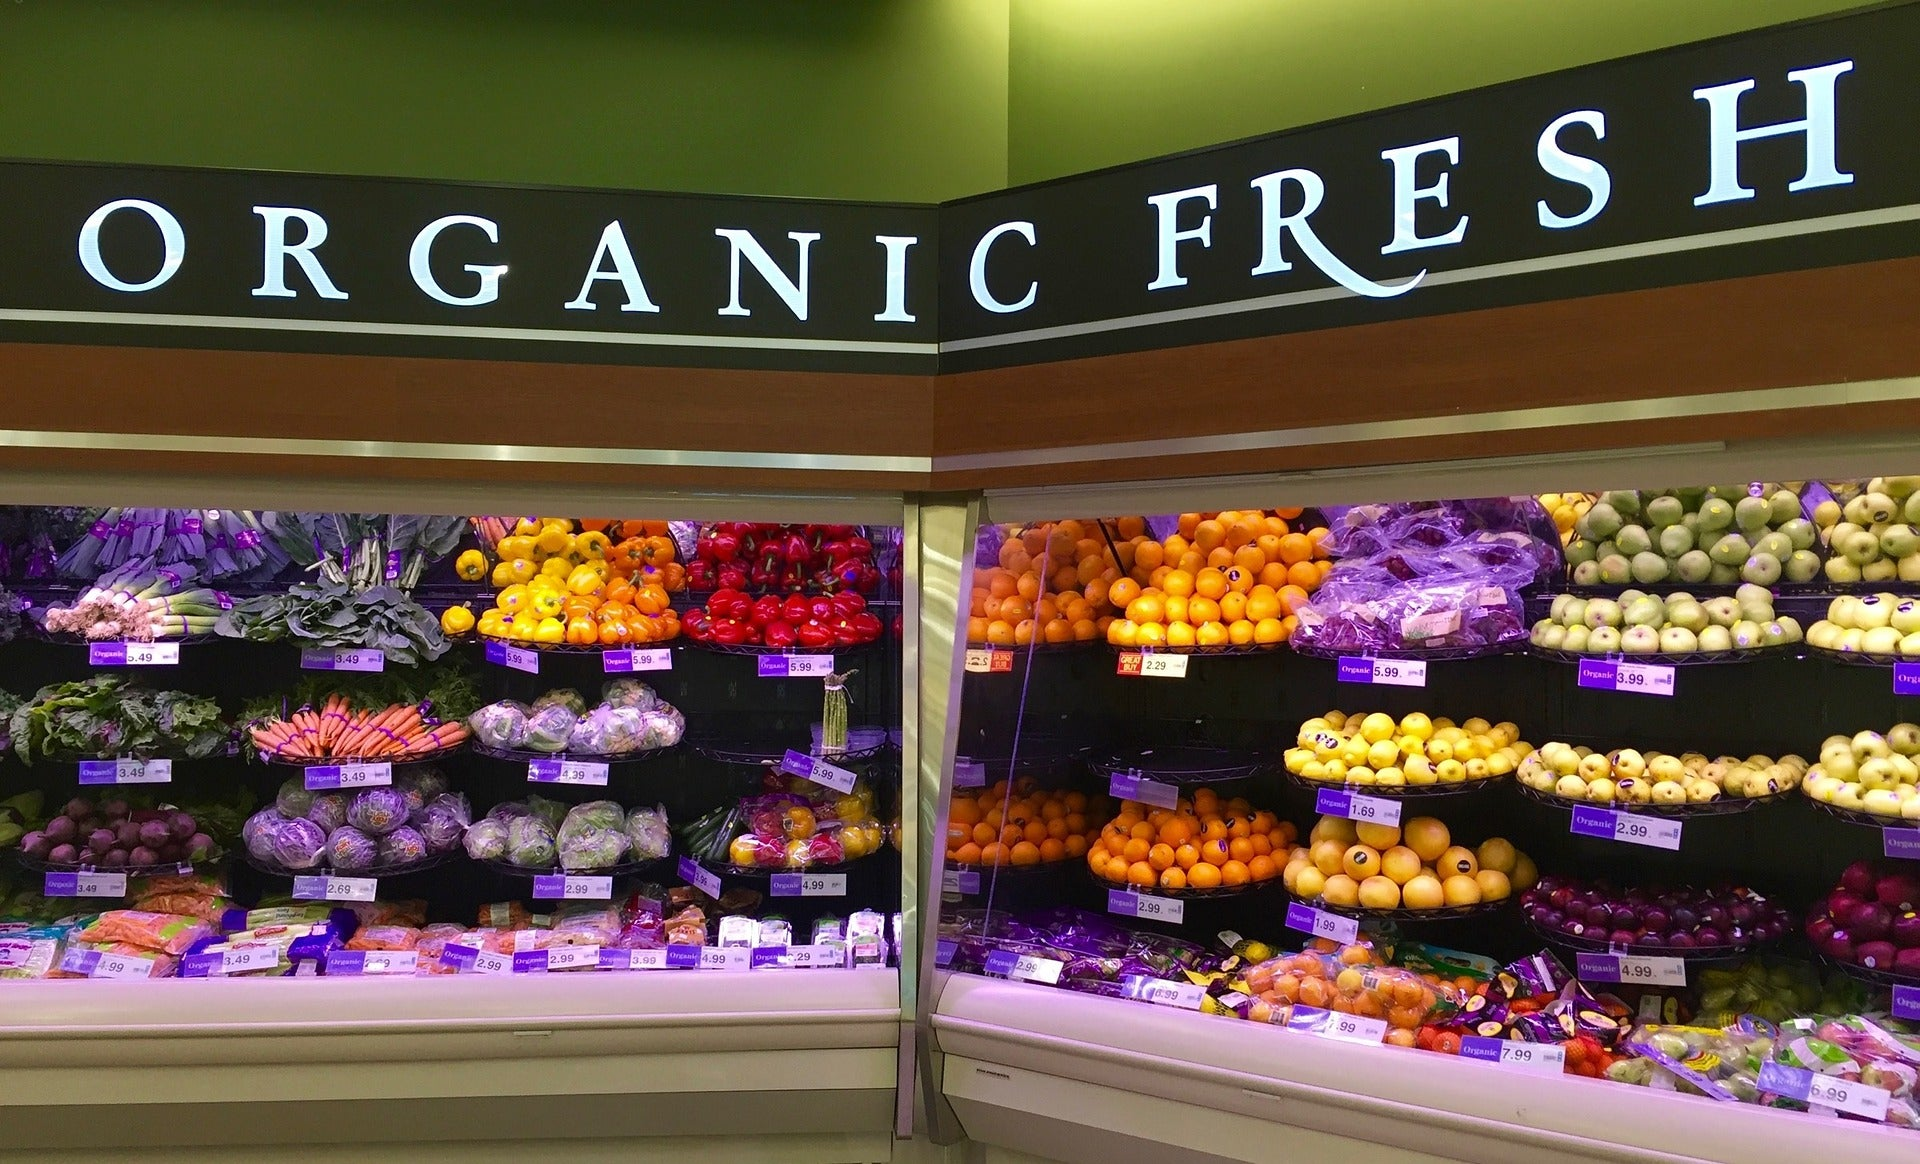 ProSource - Dianne's Challenge - Organic Produce Section at Grocery Store - Eat Healthy